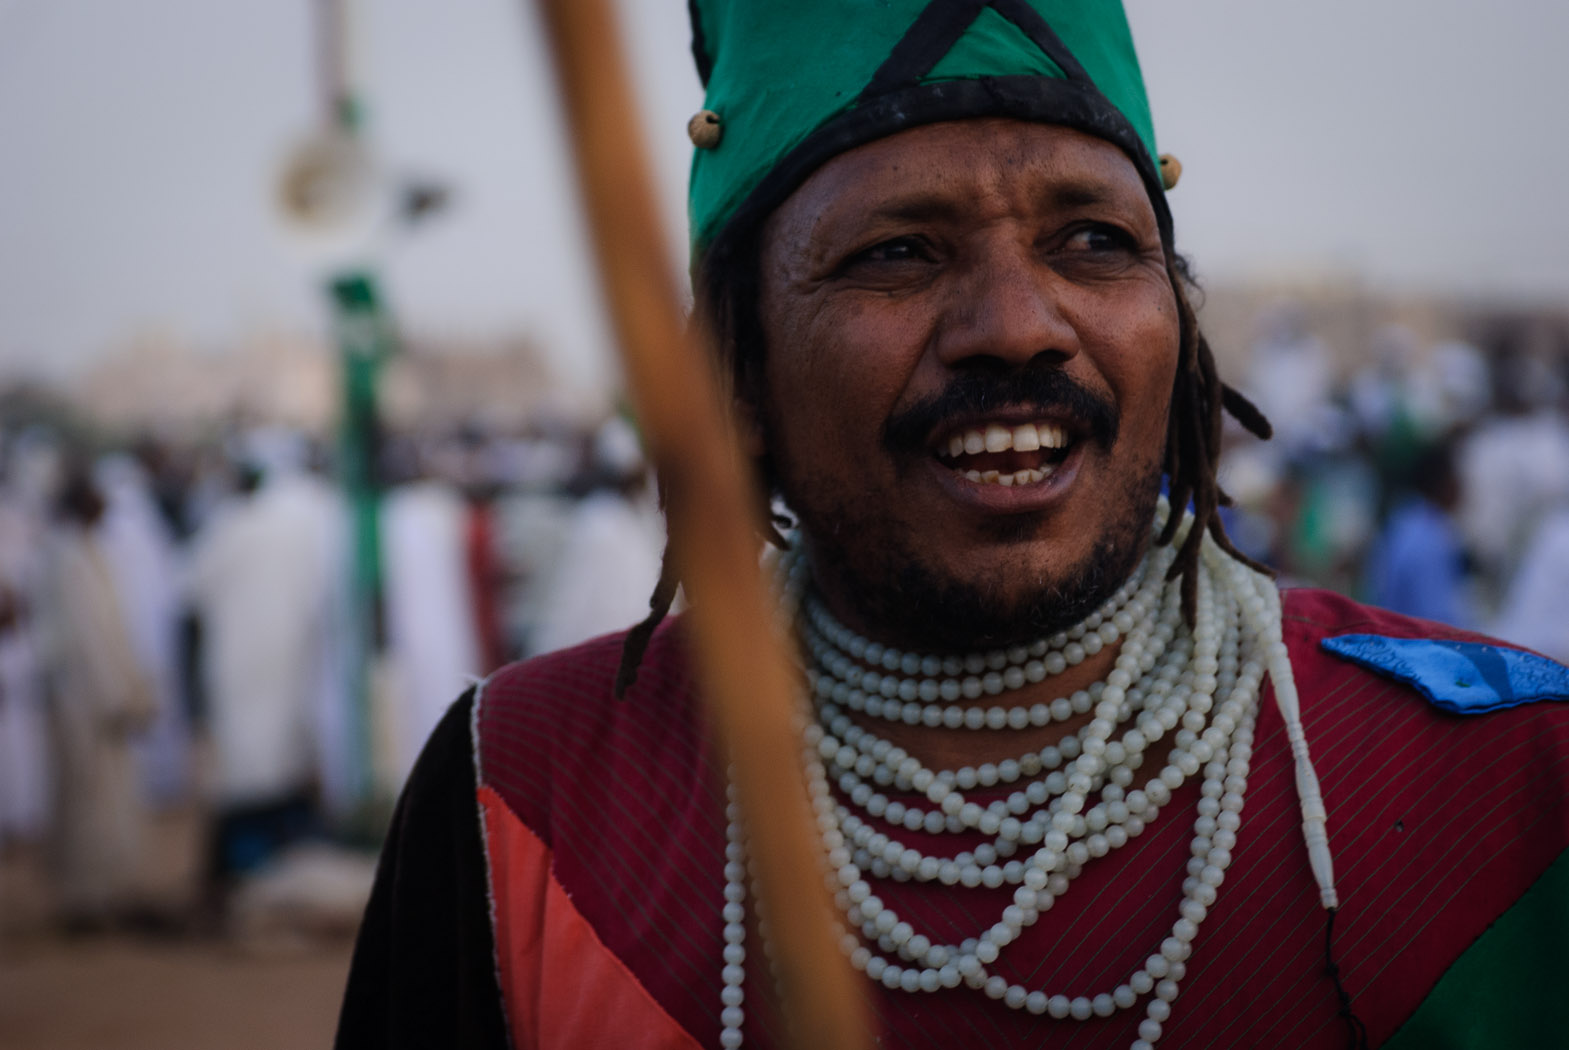 A sufi stands during the Friday  Dhikr  rituals at the Hamid al-Nil mosque in Omdurman.